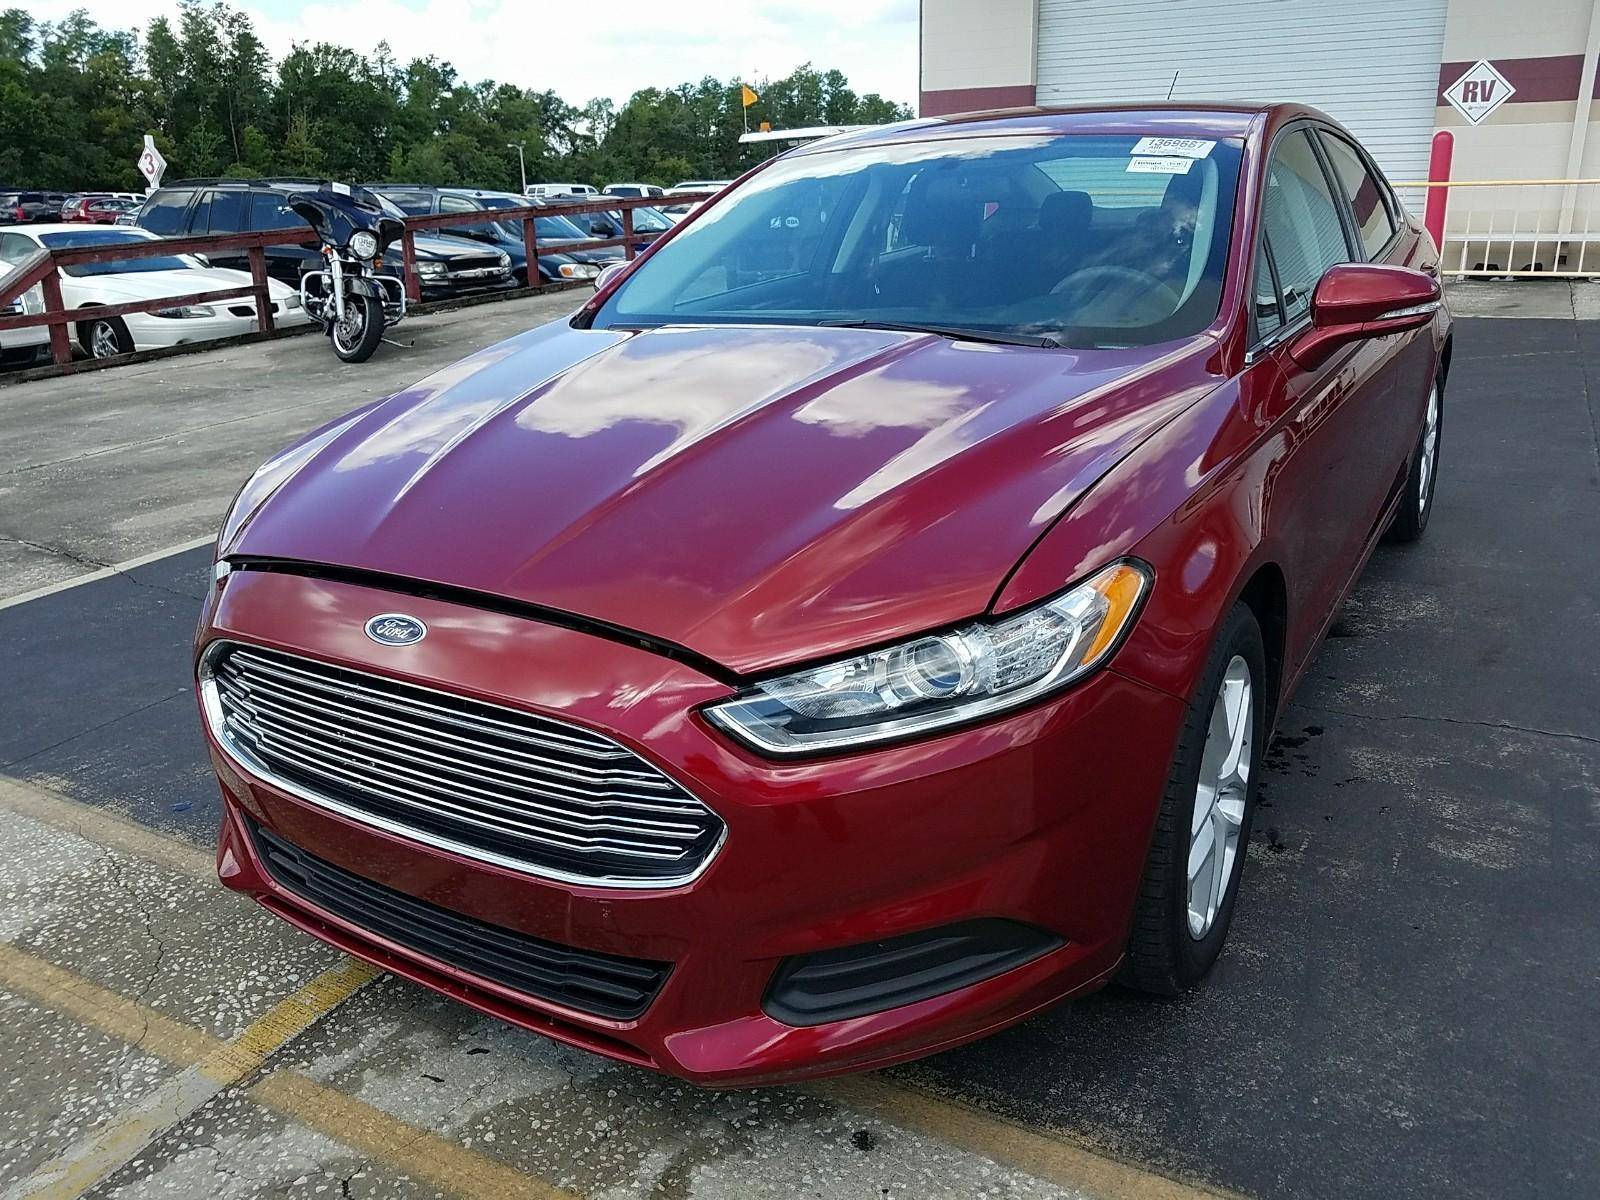 430970 - 2014 Ford Fusion